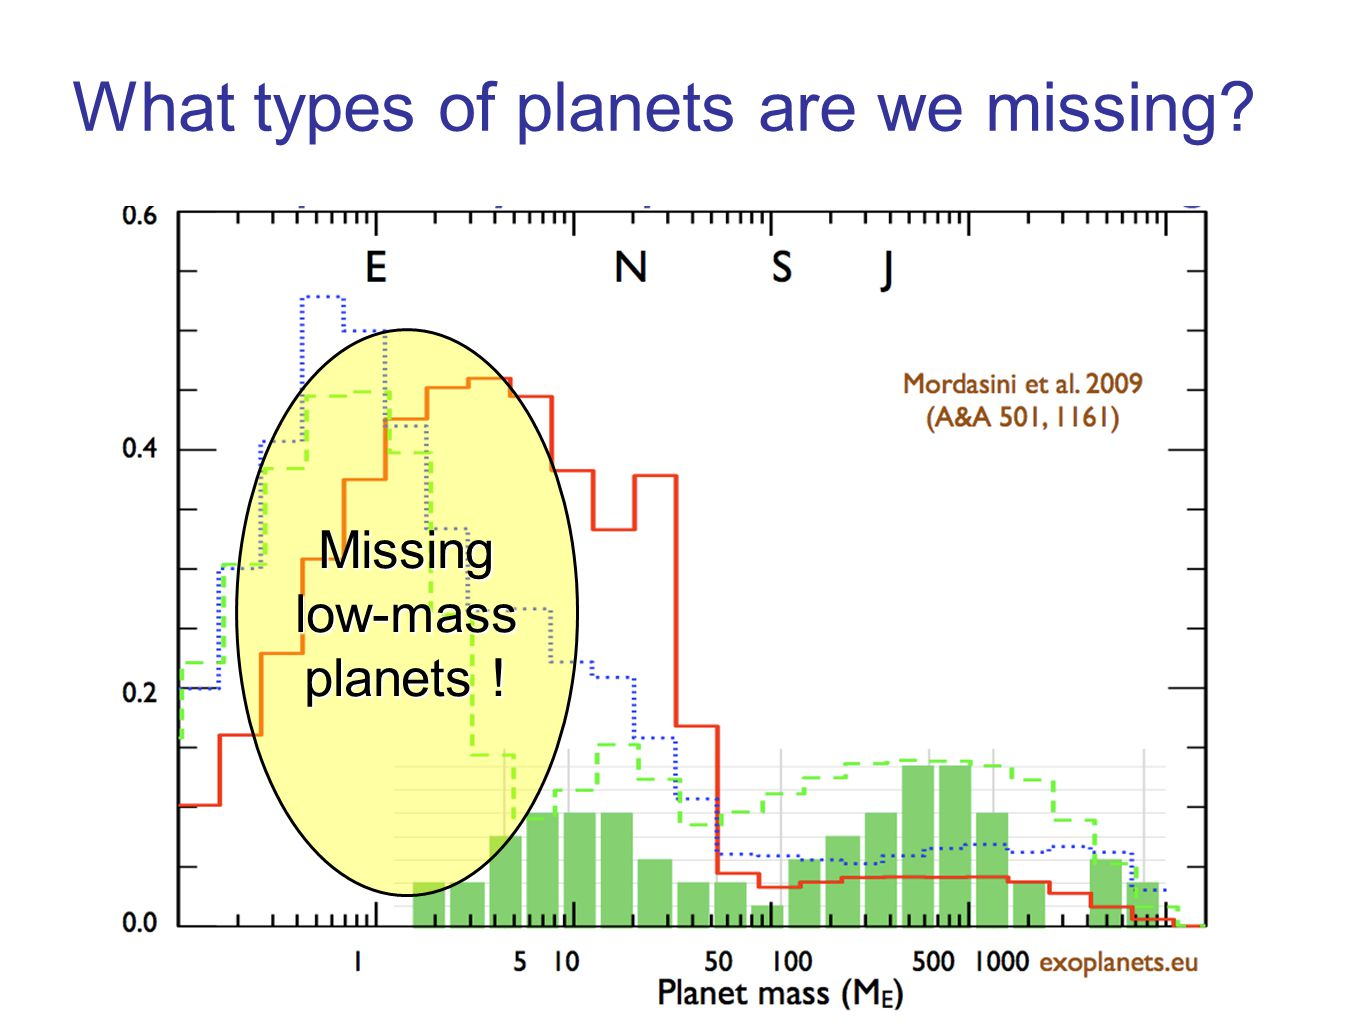 Missing low-mass planets ! What types of planets are we missing?